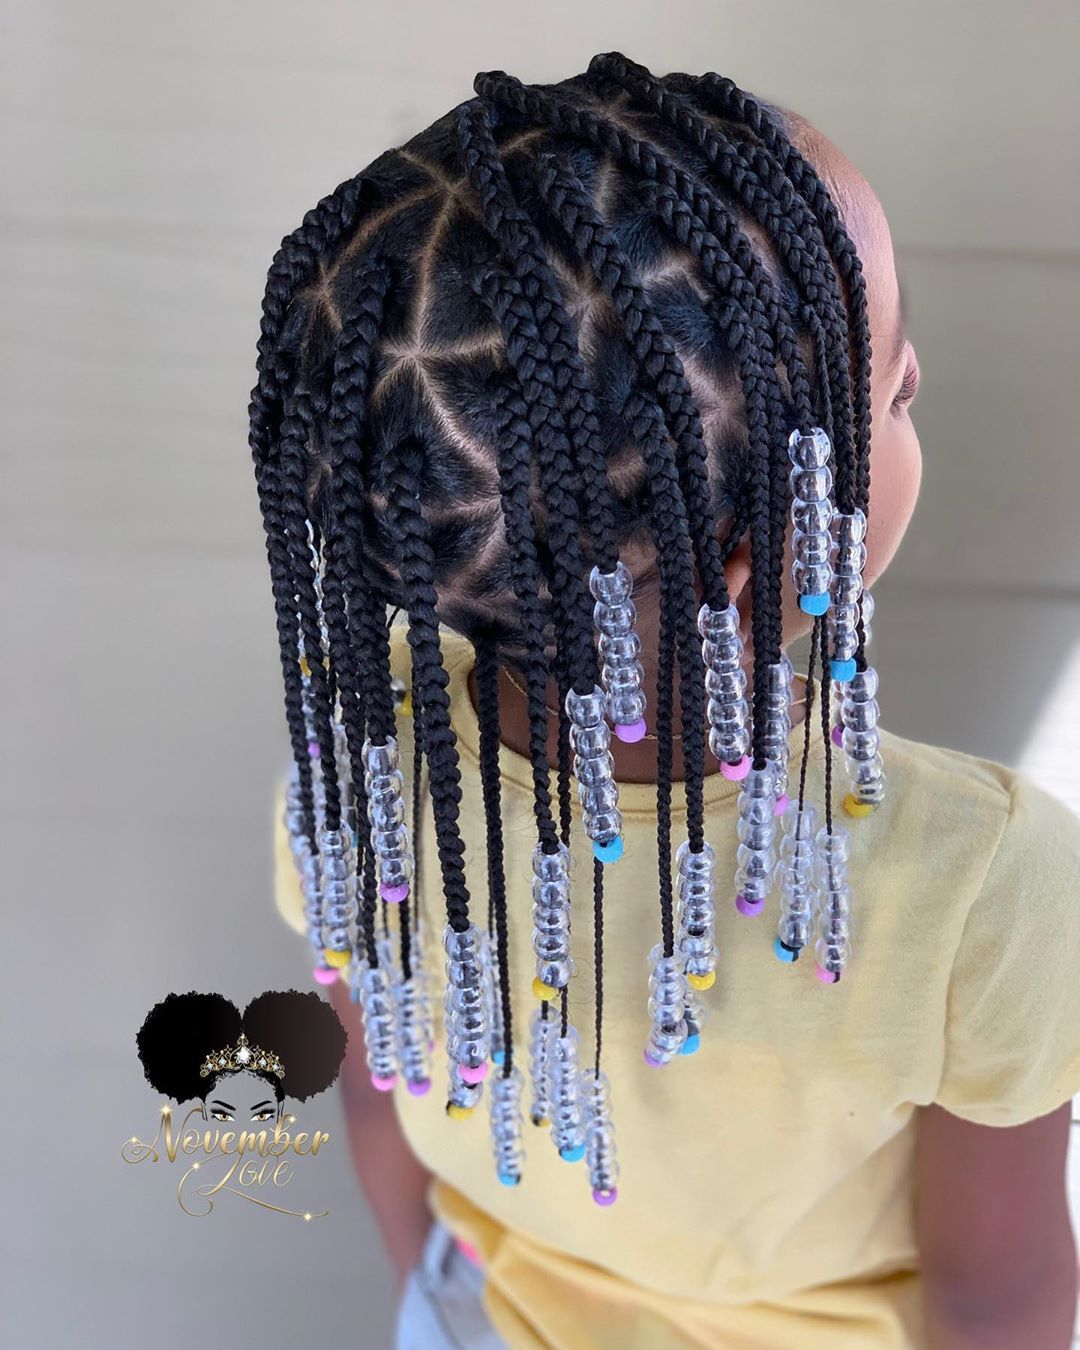 Cute hairstyles for kids hairstyleforblackwomen.net 237